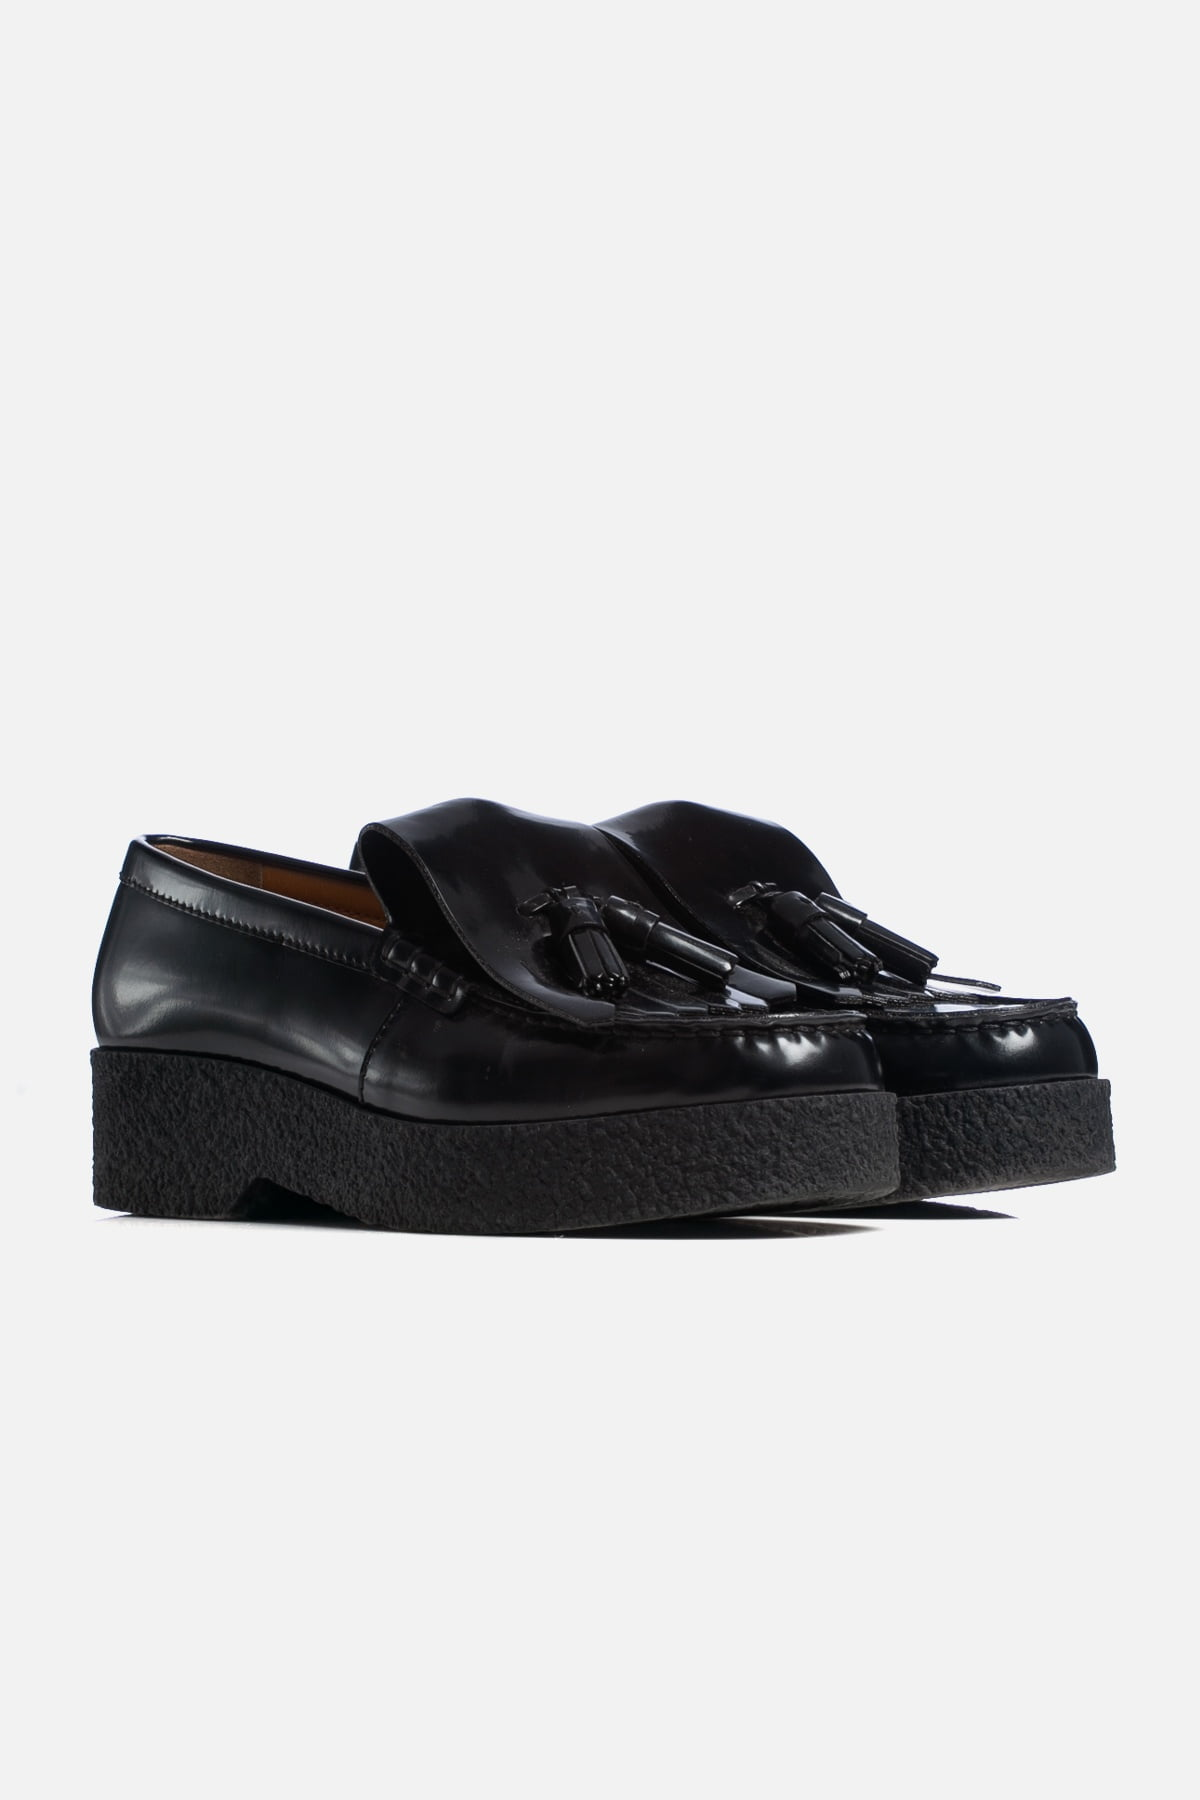 Patent Leather Tassel Accents Loafers